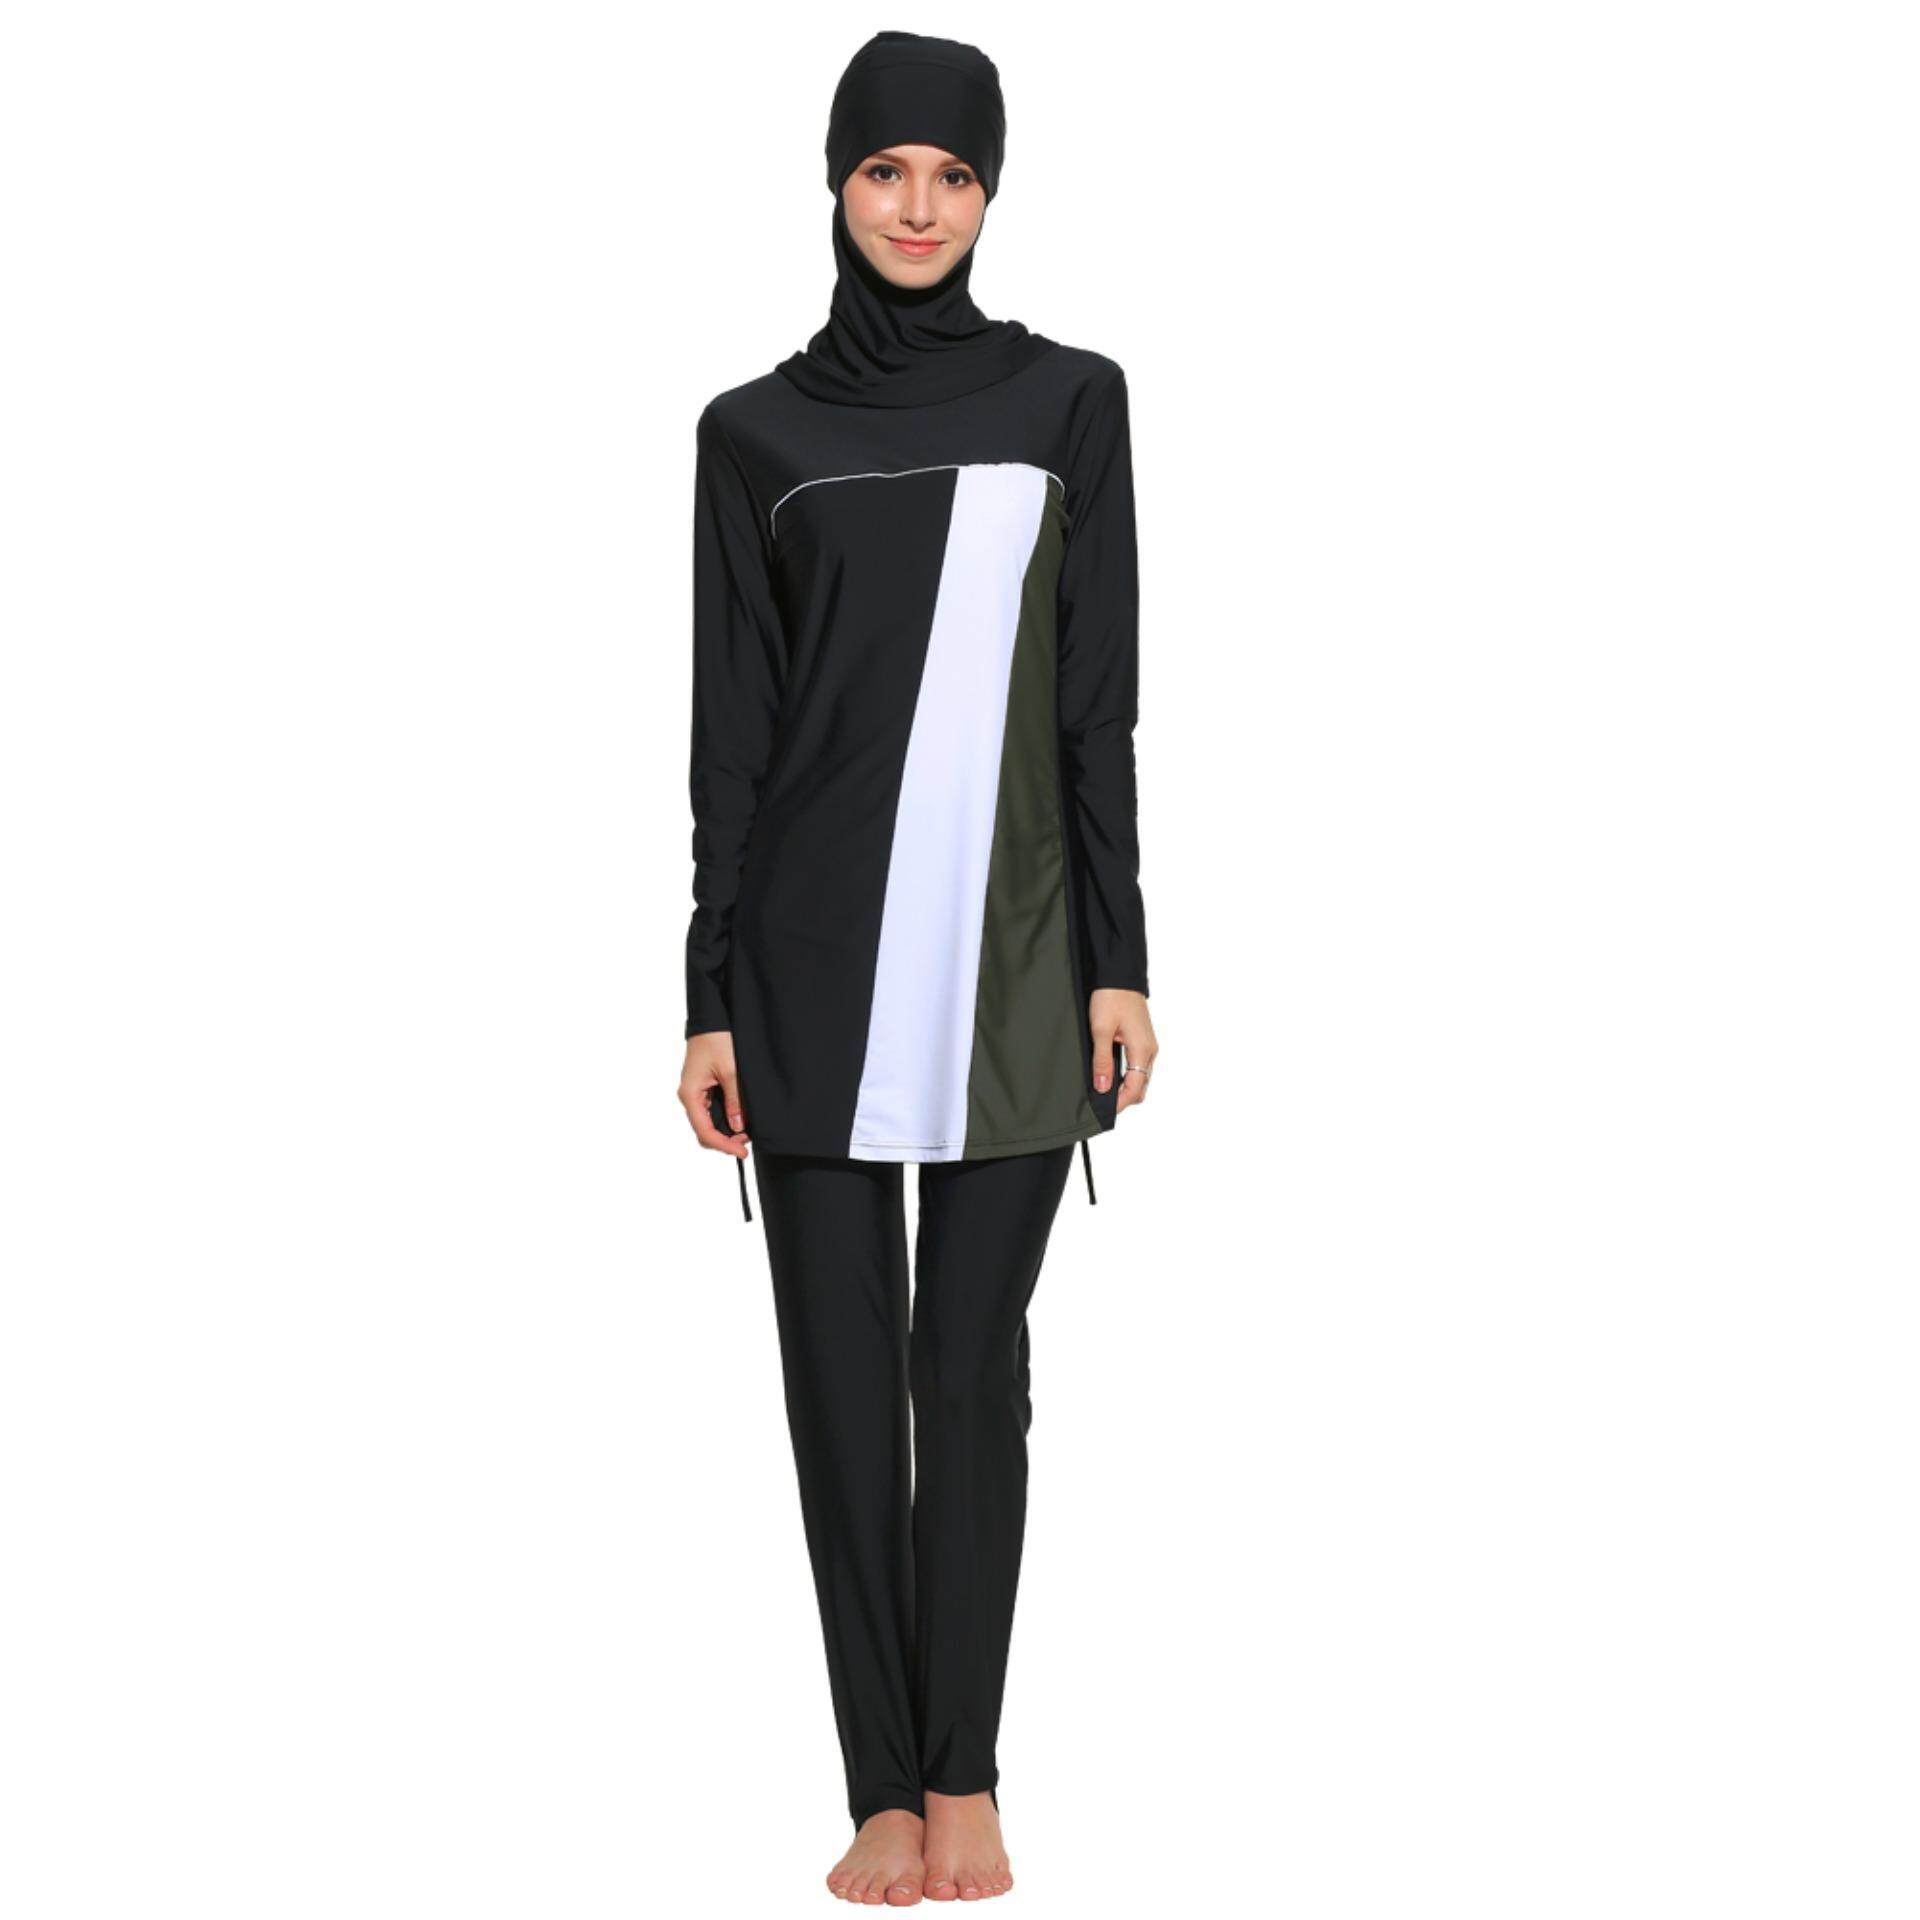 a620a2133d499 Womens' UPF 50+ Full Cover Islamic Swimsuits Modest Muslim Swimwear Burkini